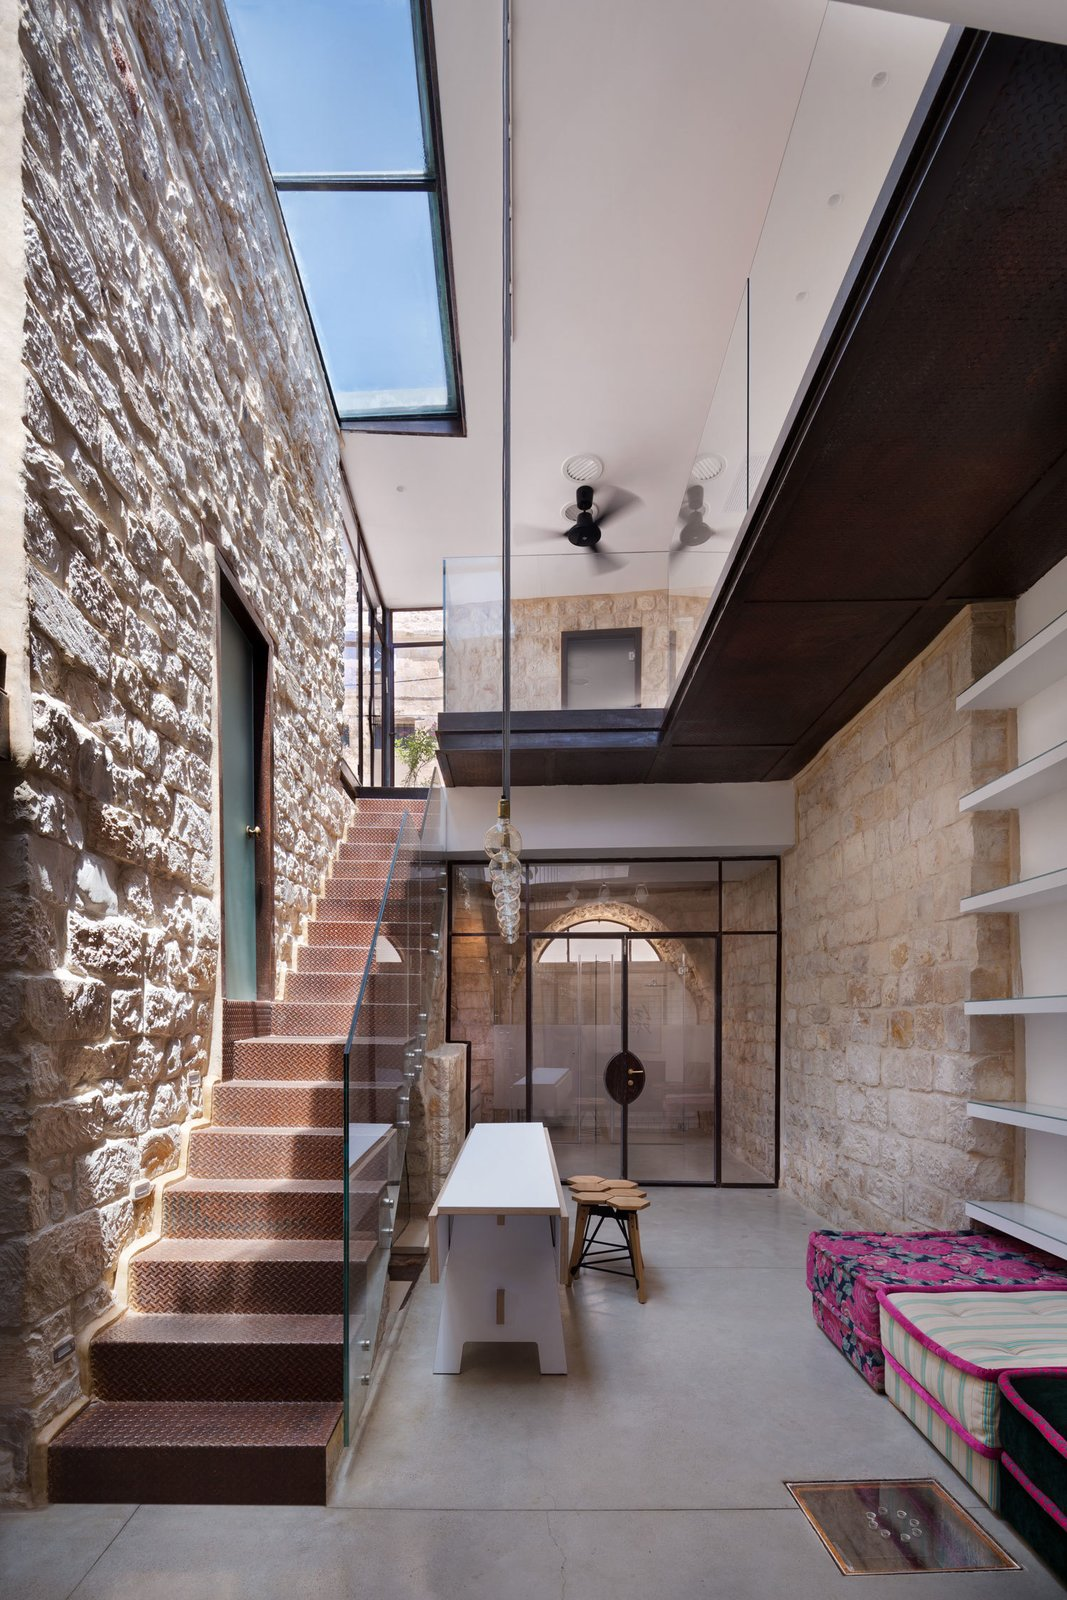 A 250 Year Old Stone House In Israel With A Surprisingly Modern Interior